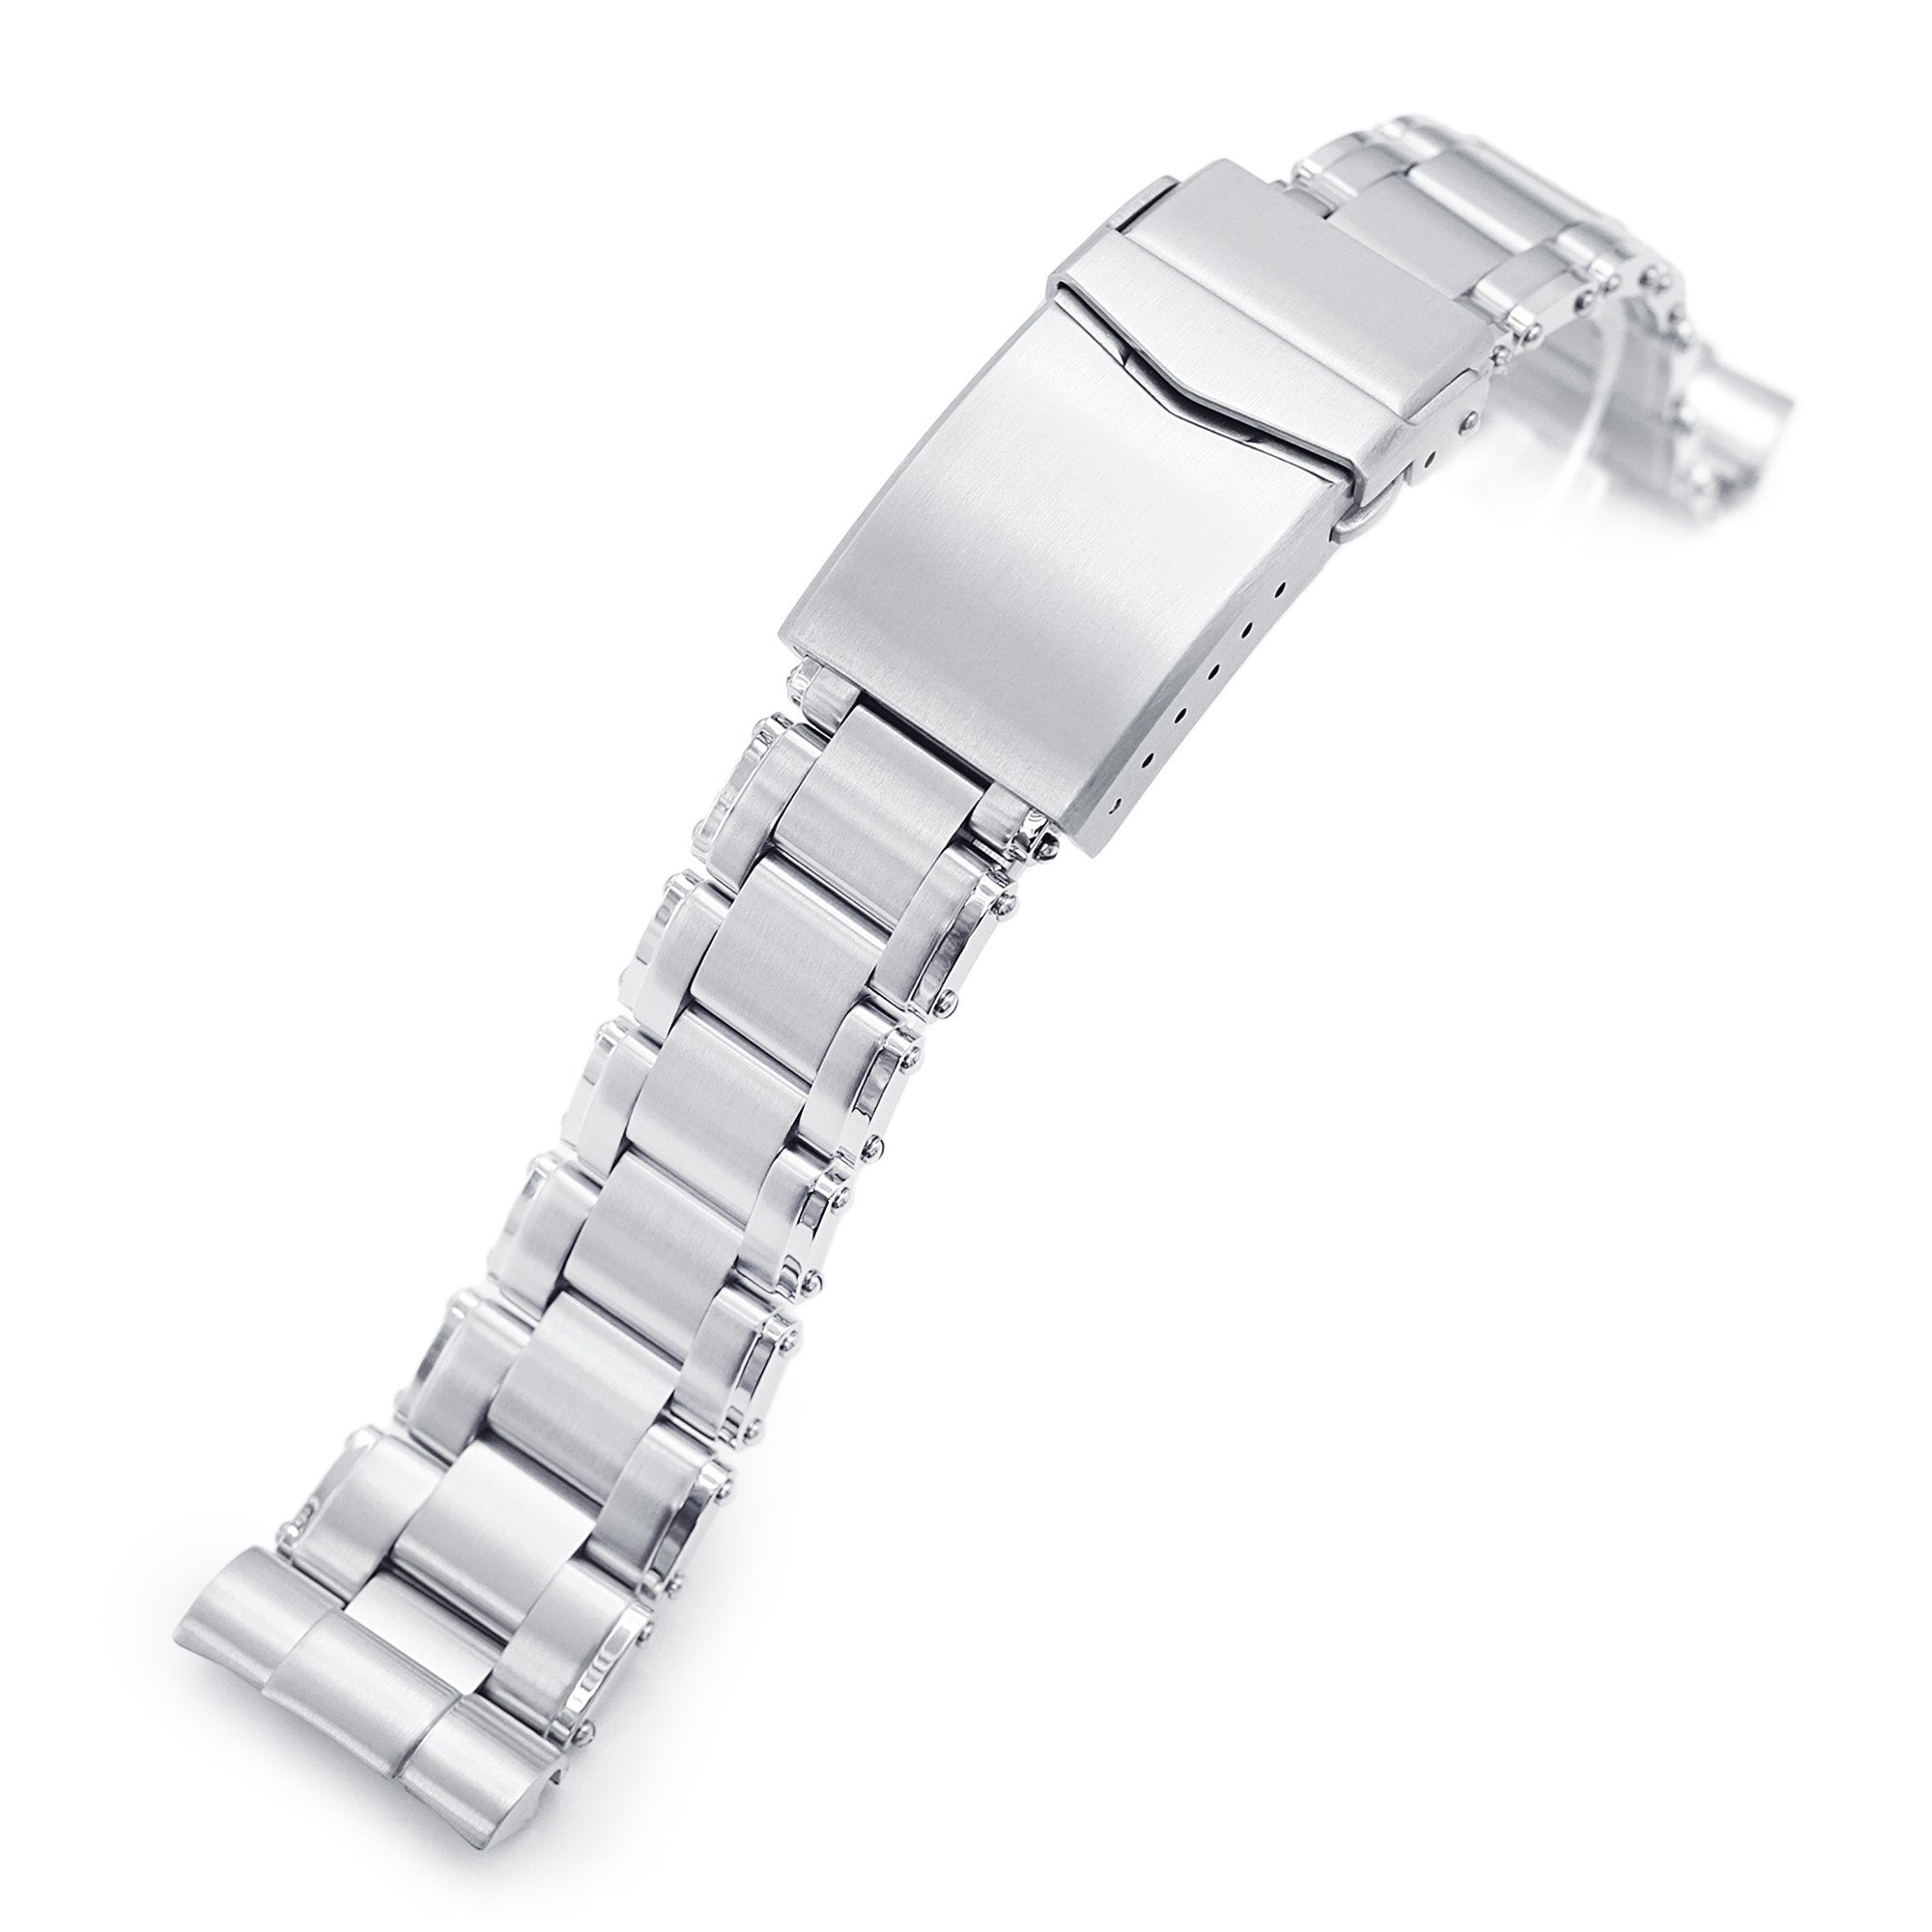 22mm Metabind 316L Stainless Steel Watch Bracelet for Seiko new Turtles SRP777 Brushed V-Clasp Strapcode Watch Bands